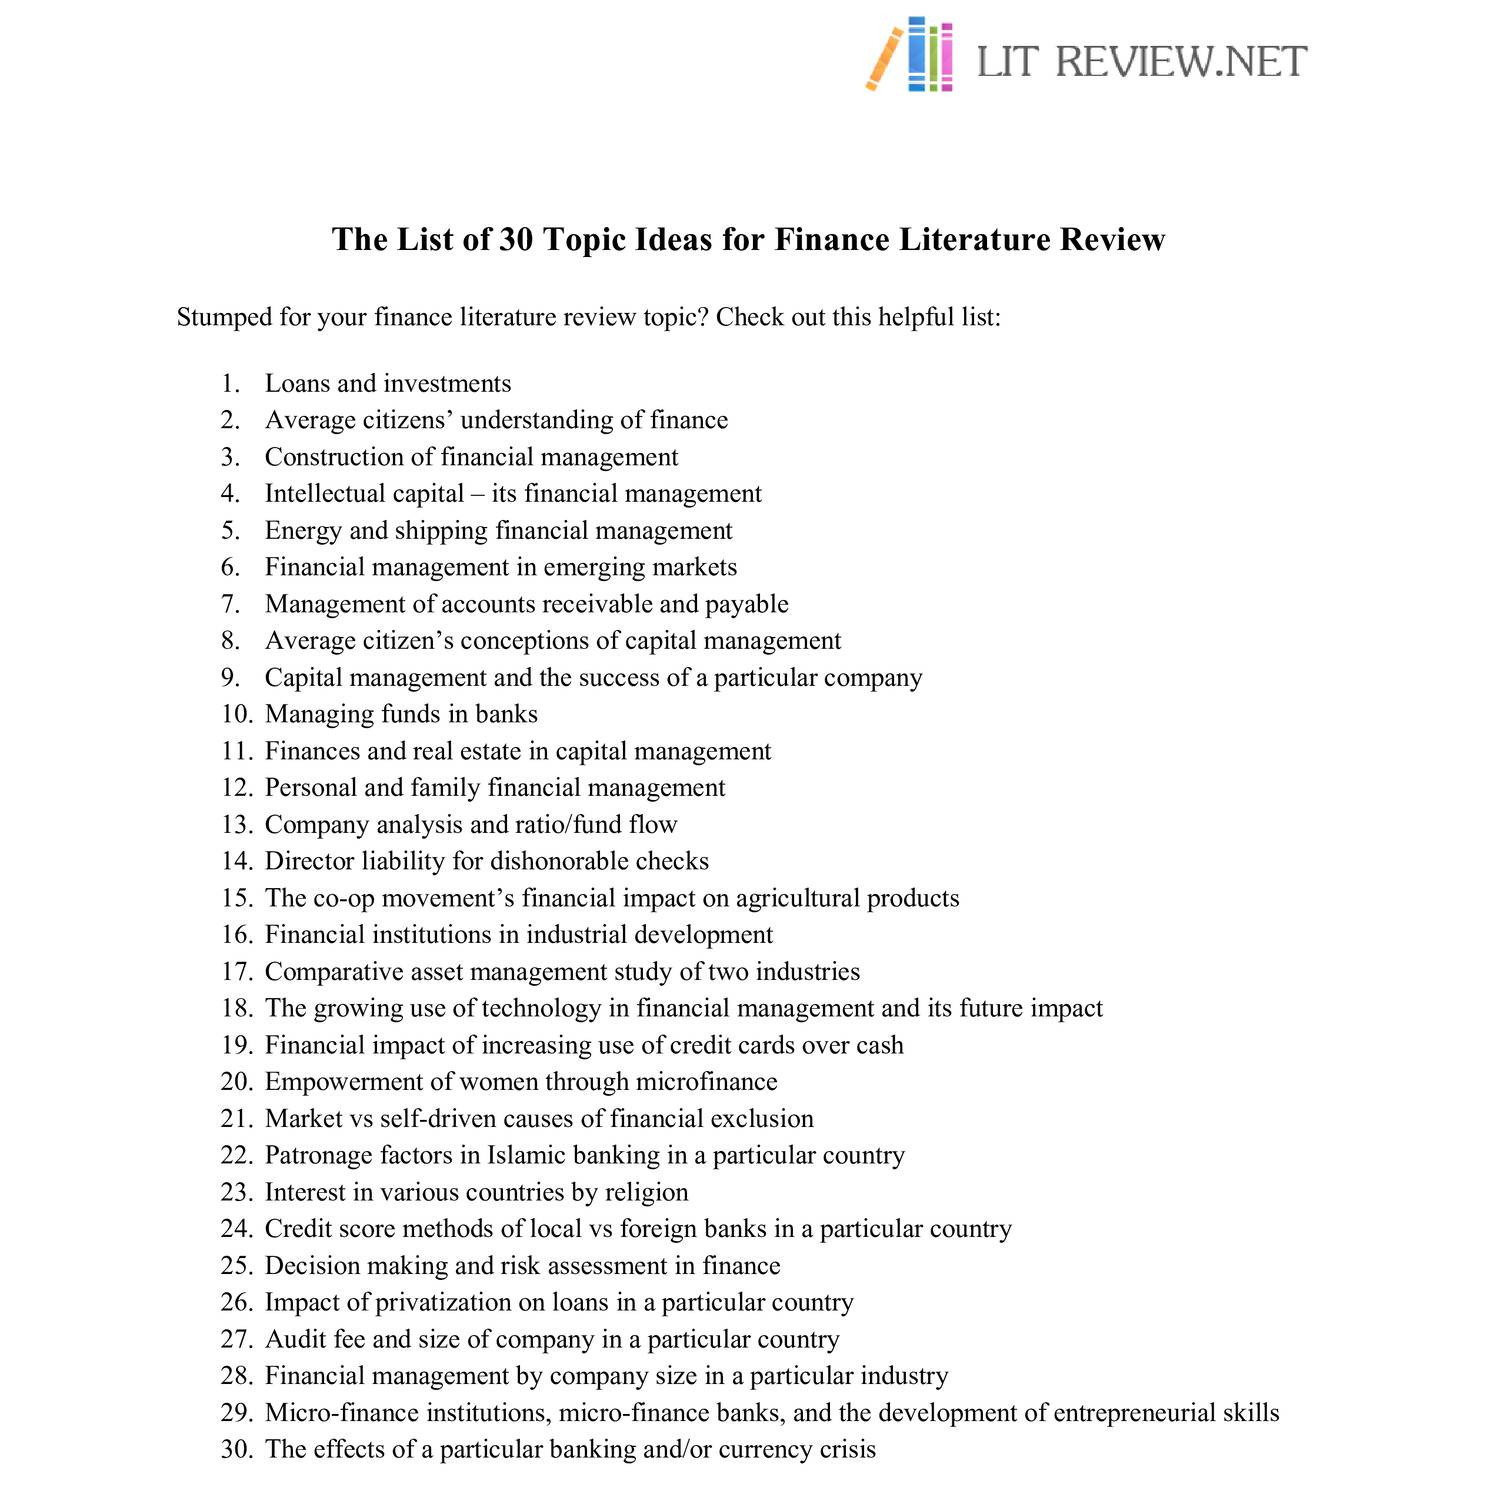 Finance Review: The List Of 30 Topic Ideas For Finance Literature Review